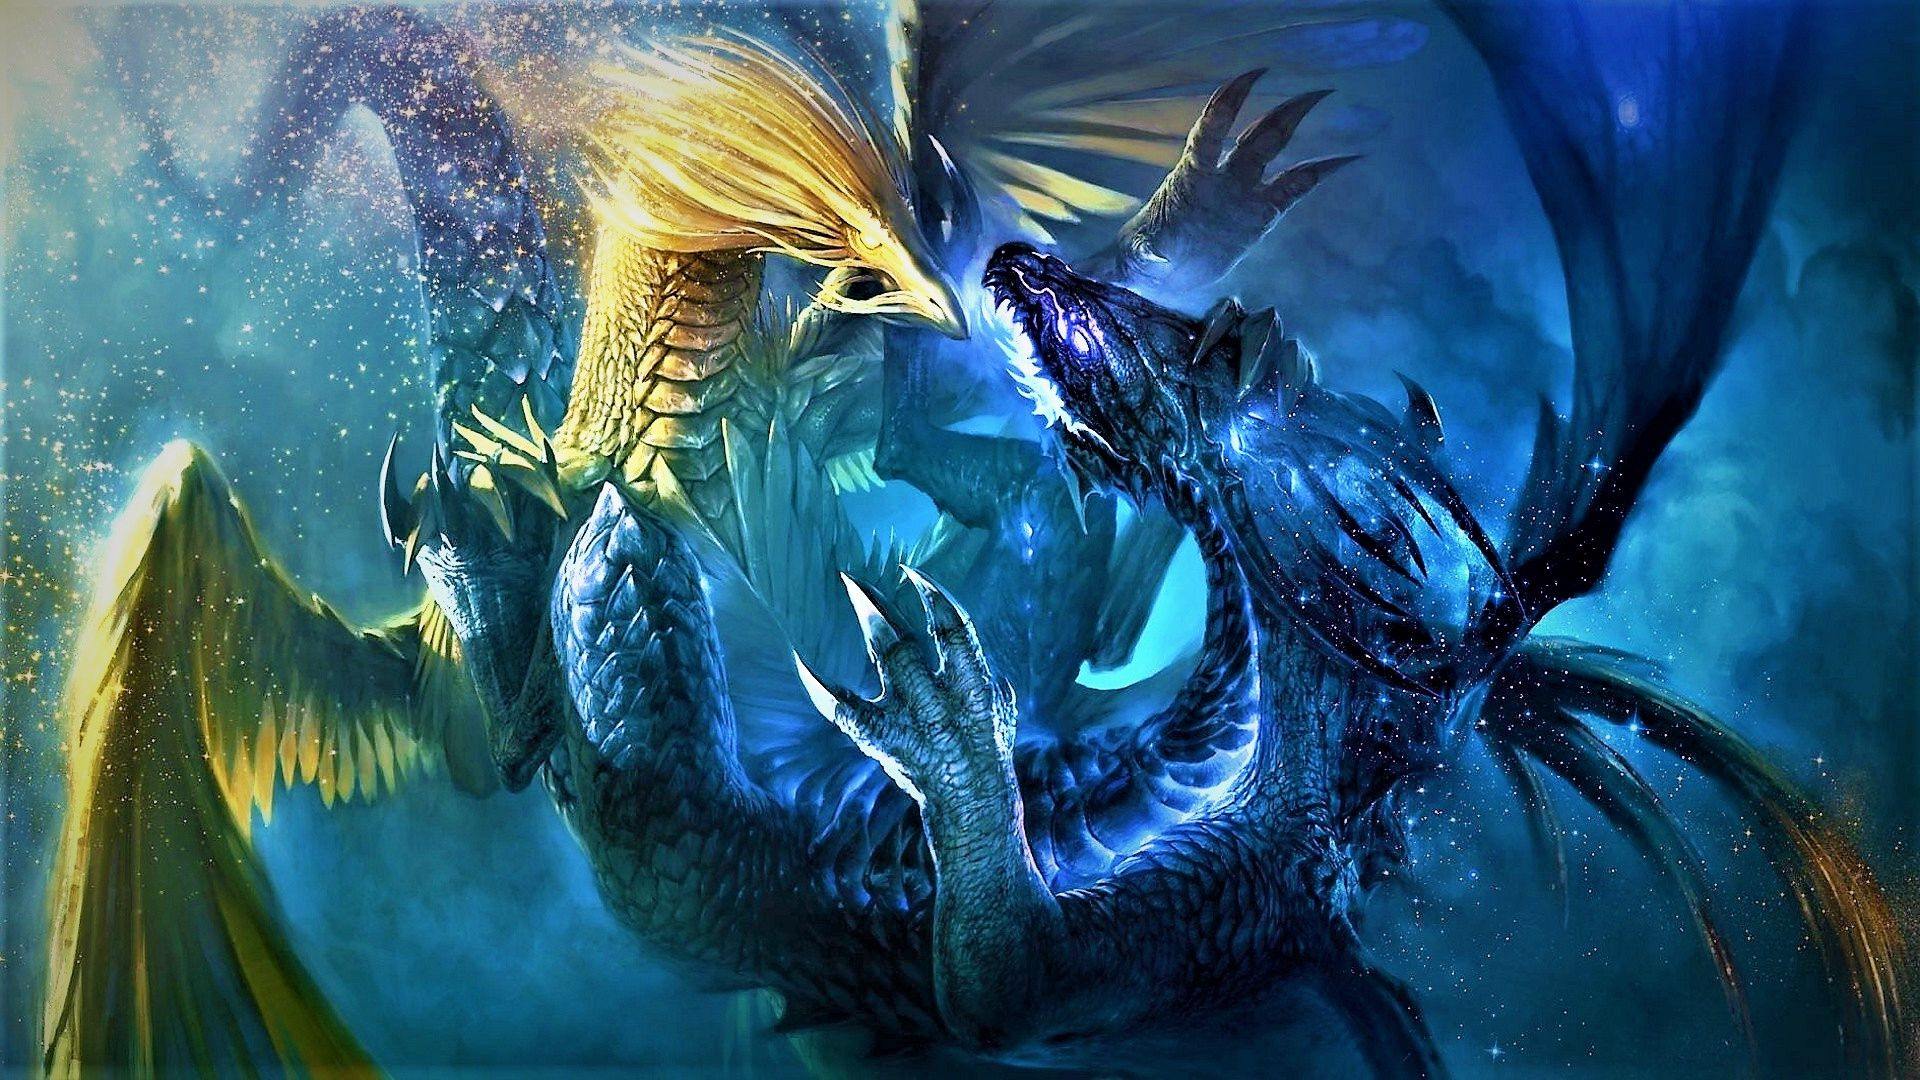 Fantasy Dragons Fighting Dragon Fight Wallpaper Backgrounds Computer Wallpaper